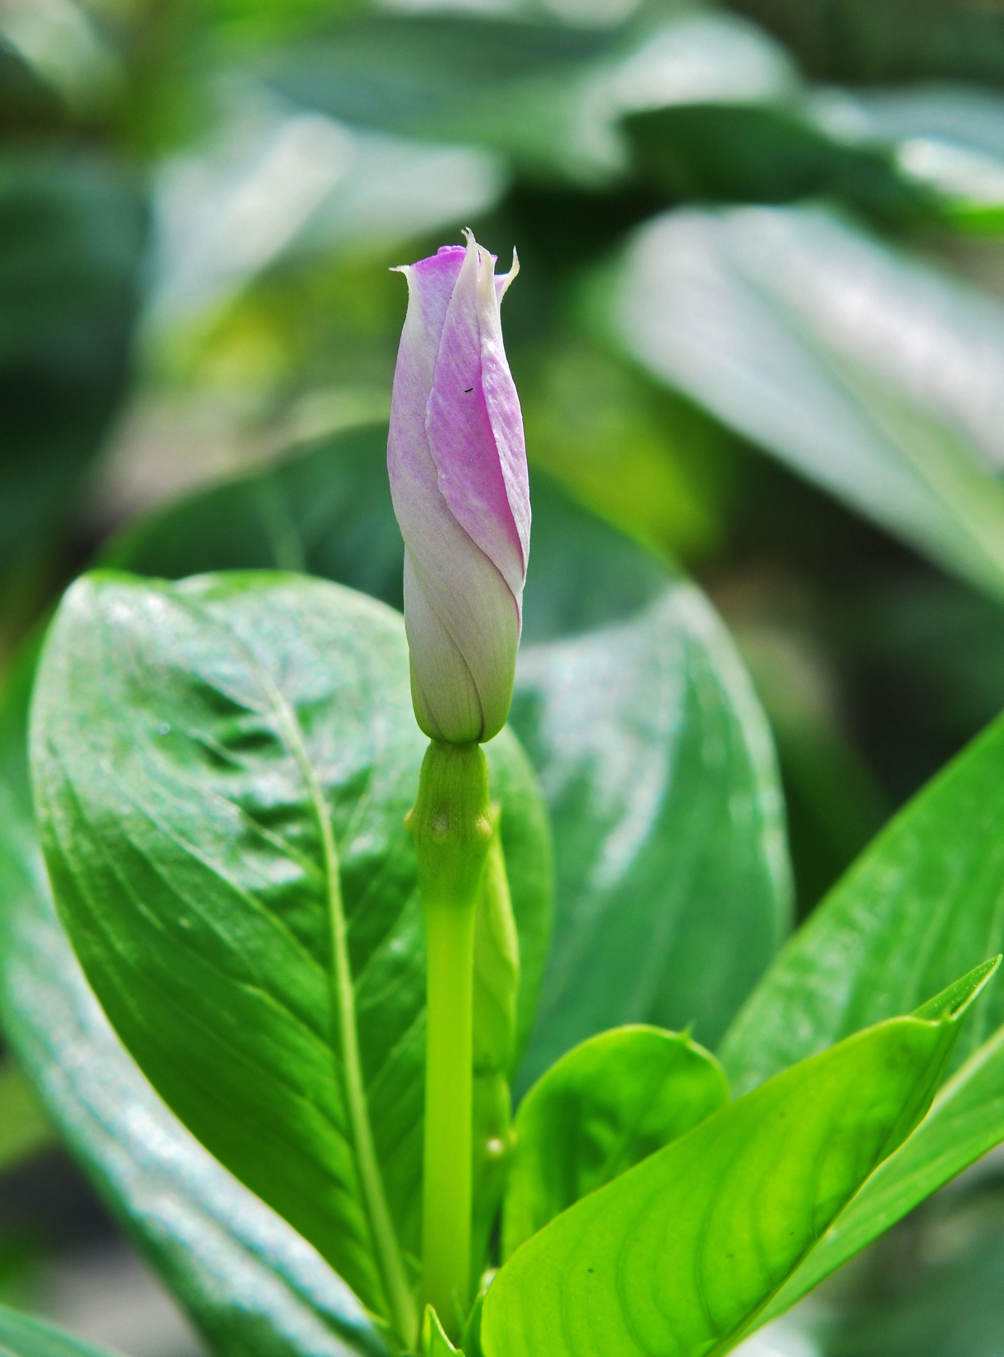 Madagascar periwinkle facts and health benefits